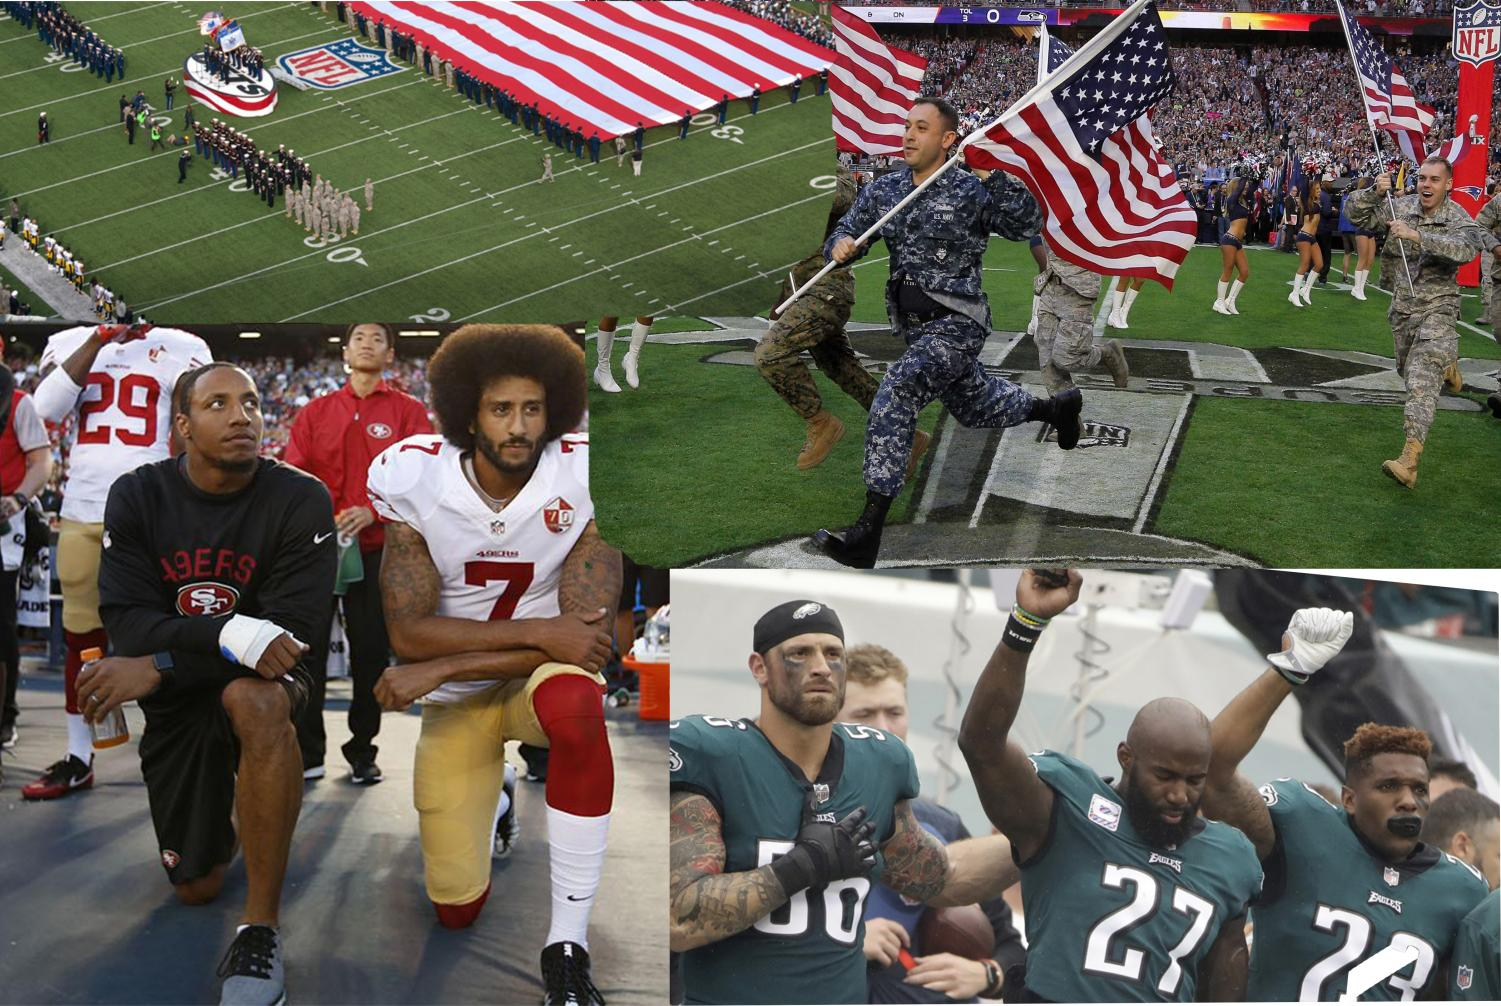 NFL players have been protesting the national anthem for over a year by kneeling or raising fists. Graphic courtesy of Patrick Dóñez ('21)